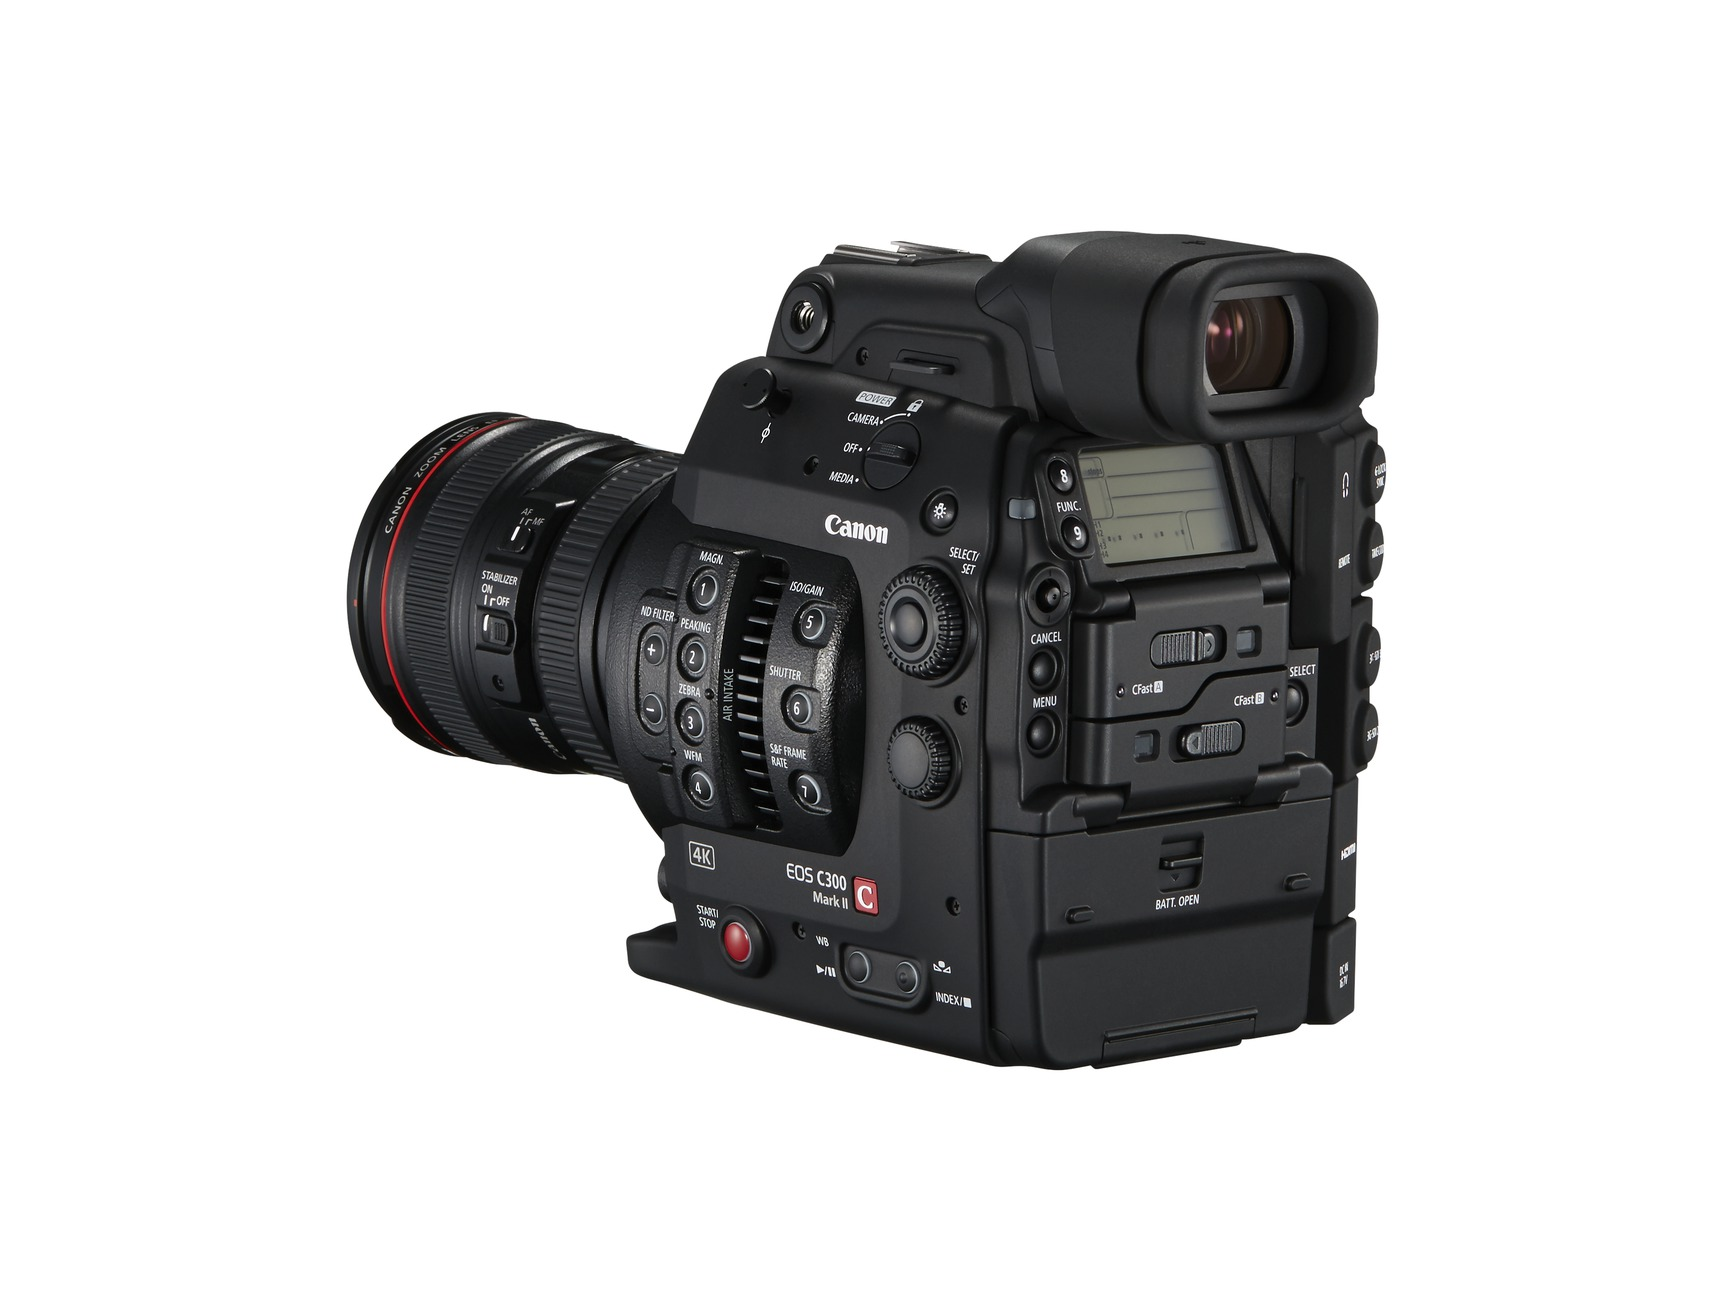 New Canon EOS C300 Mark II back left view